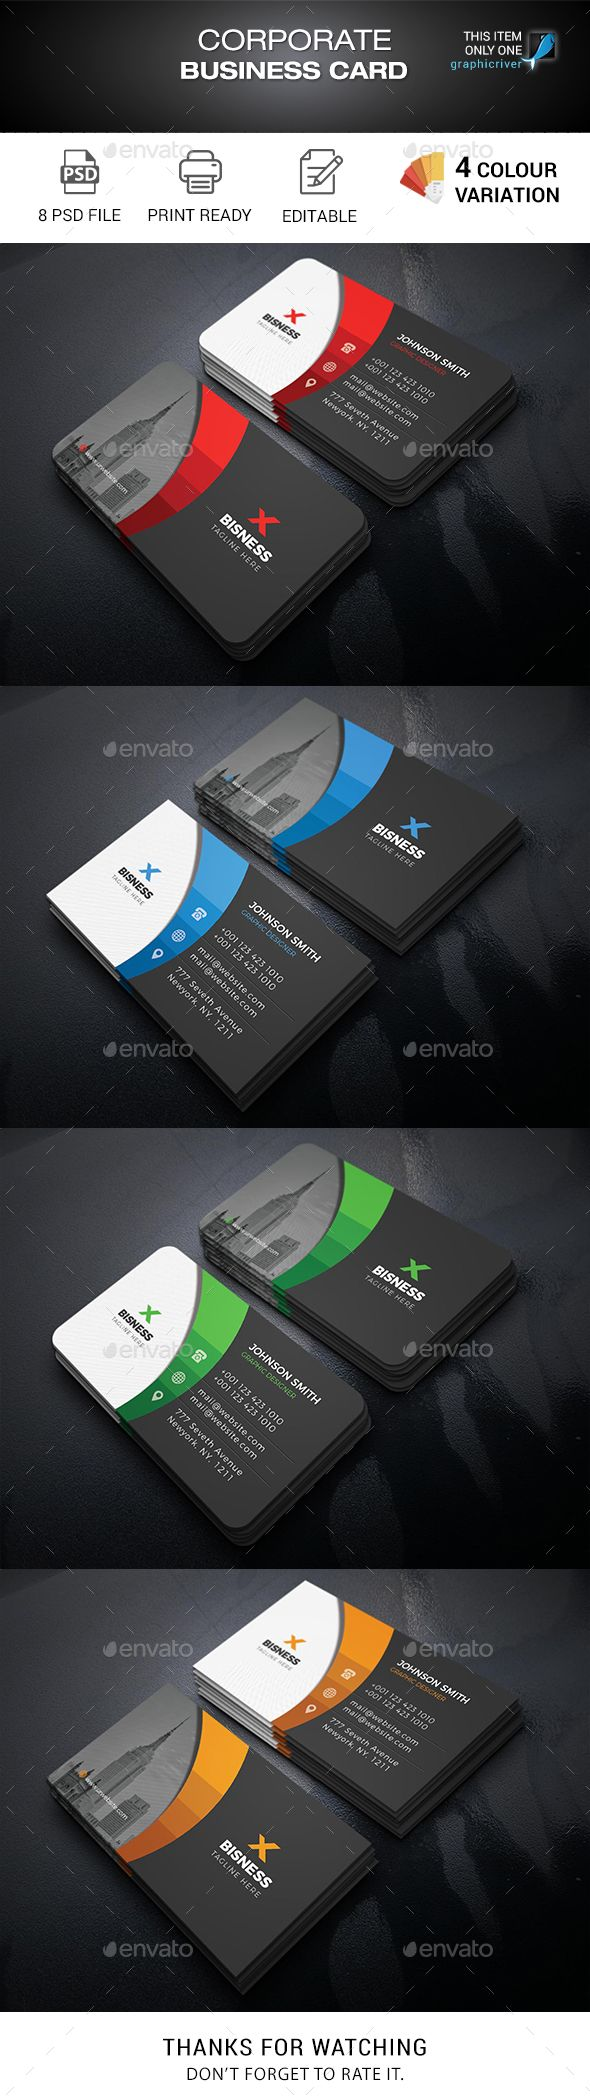 Business Cards Business Card Template Psd Business Card Graphic Corporate Business Card